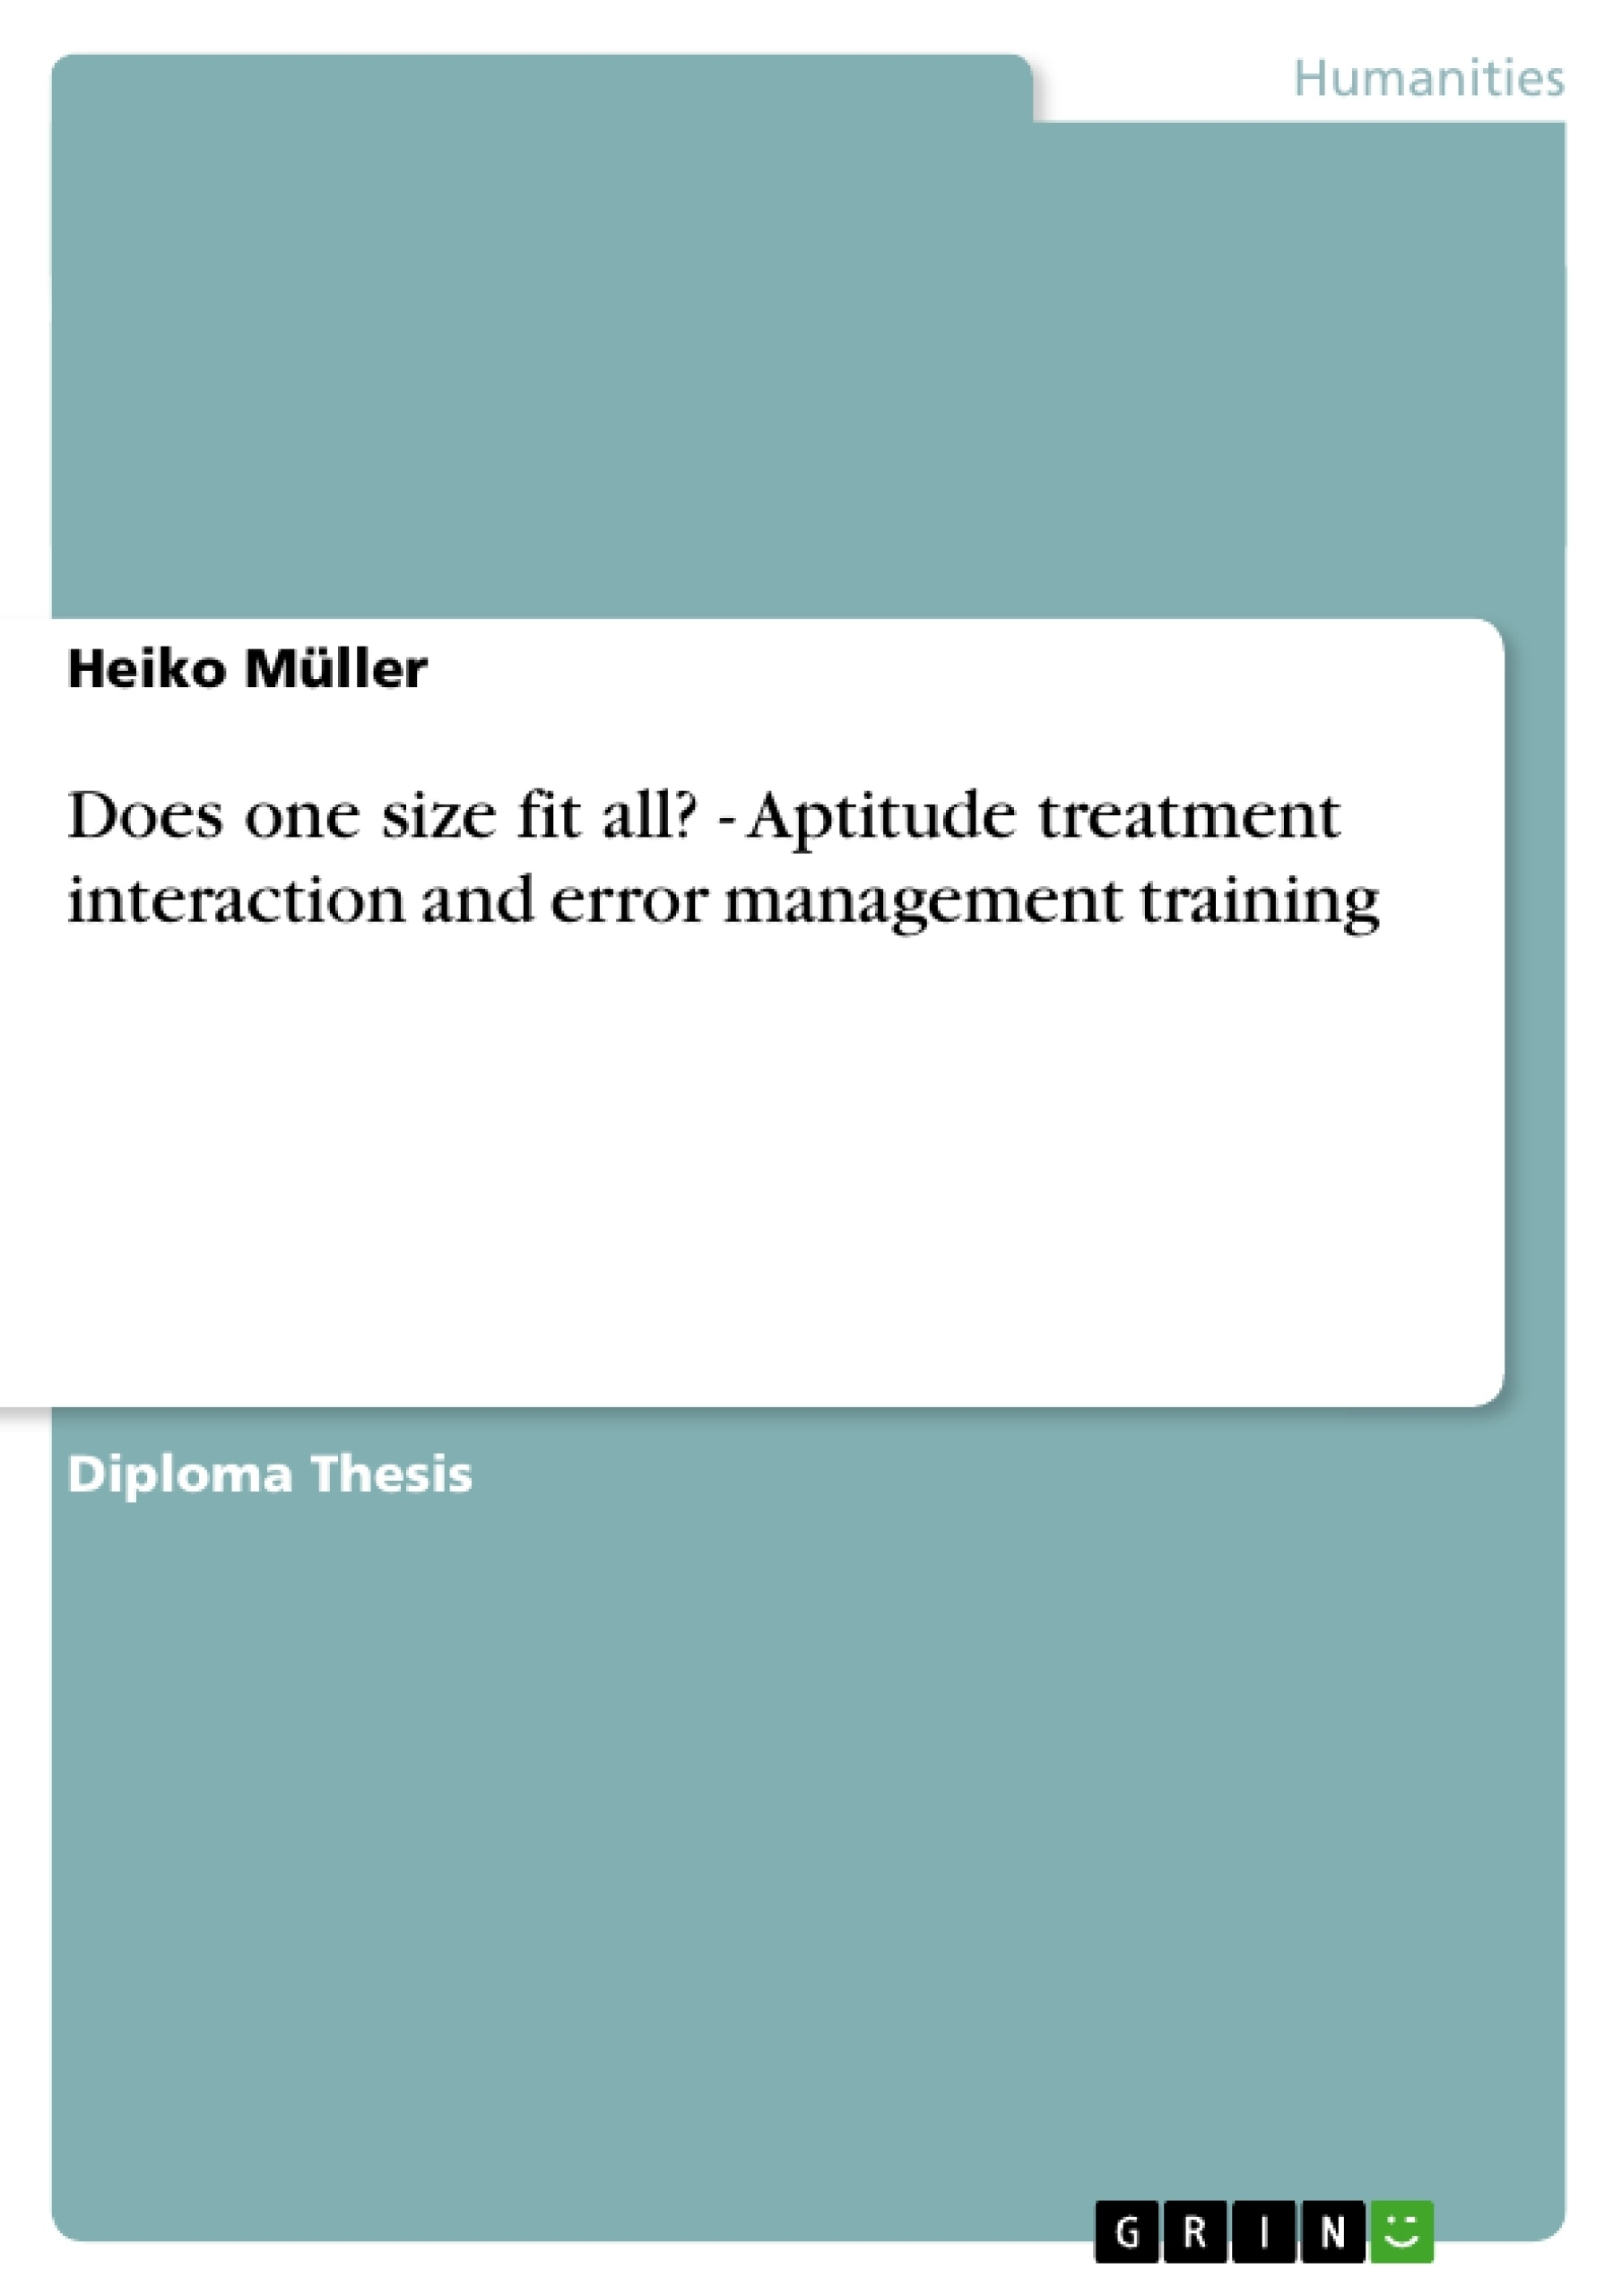 Title: Does one size fit all? - Aptitude treatment interaction and error management training